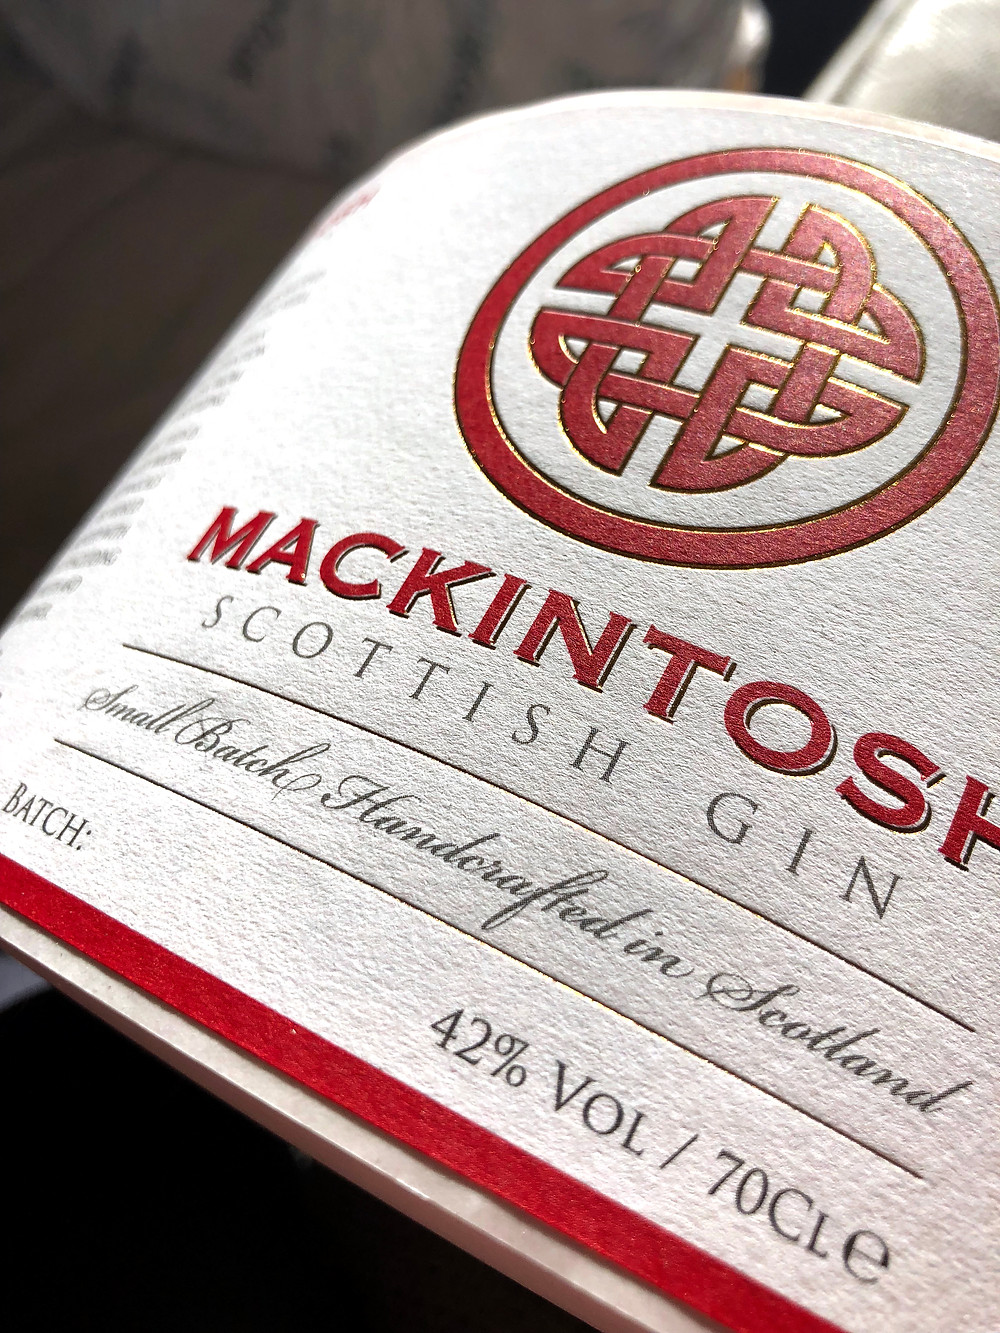 Gold foiled embossed labels for Mackintosh Gin